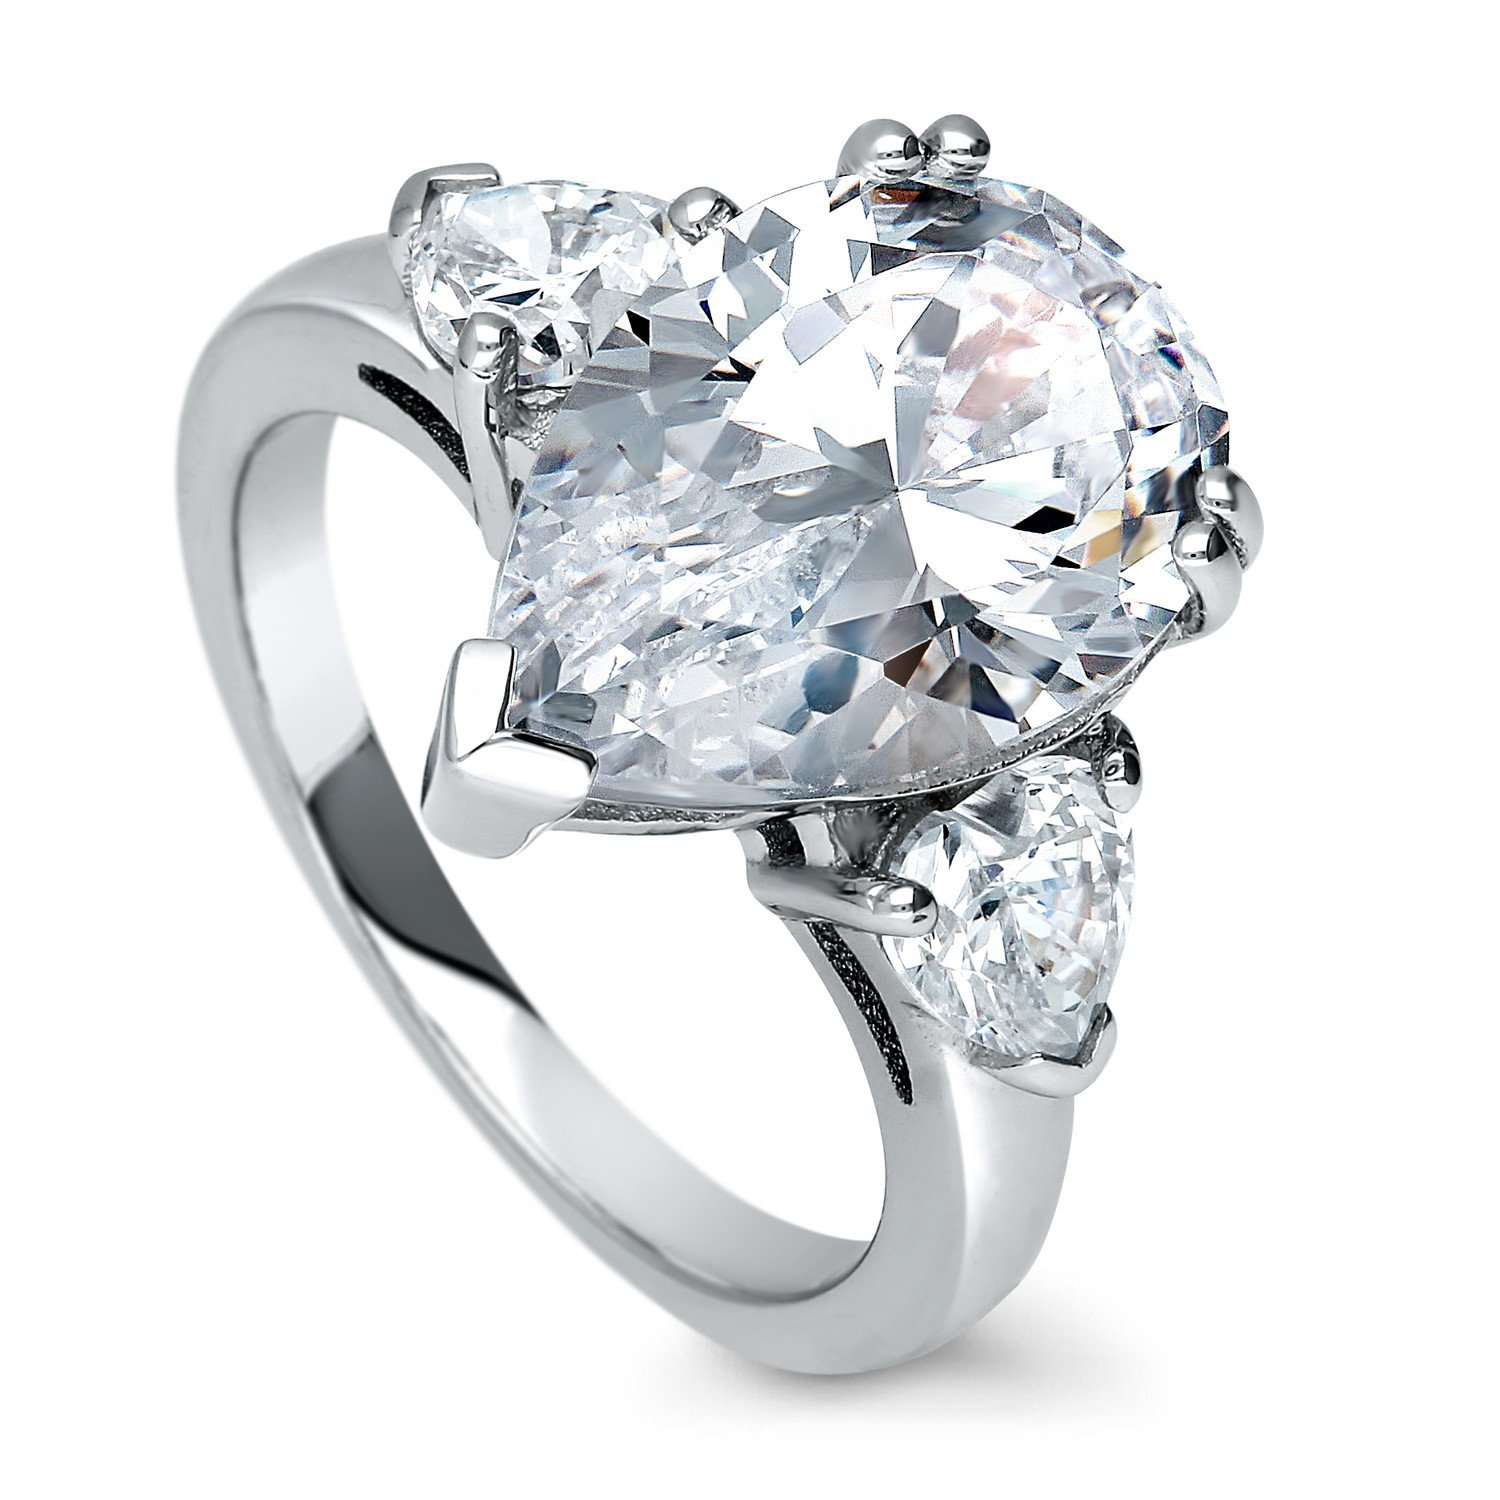 4f8cc00f580fb BERRICLE Rhodium Plated Sterling Silver Pear Cut Cubic Zirconia CZ  Statement 3-Stone Anniversary Engagement Ring 6.63 CTW